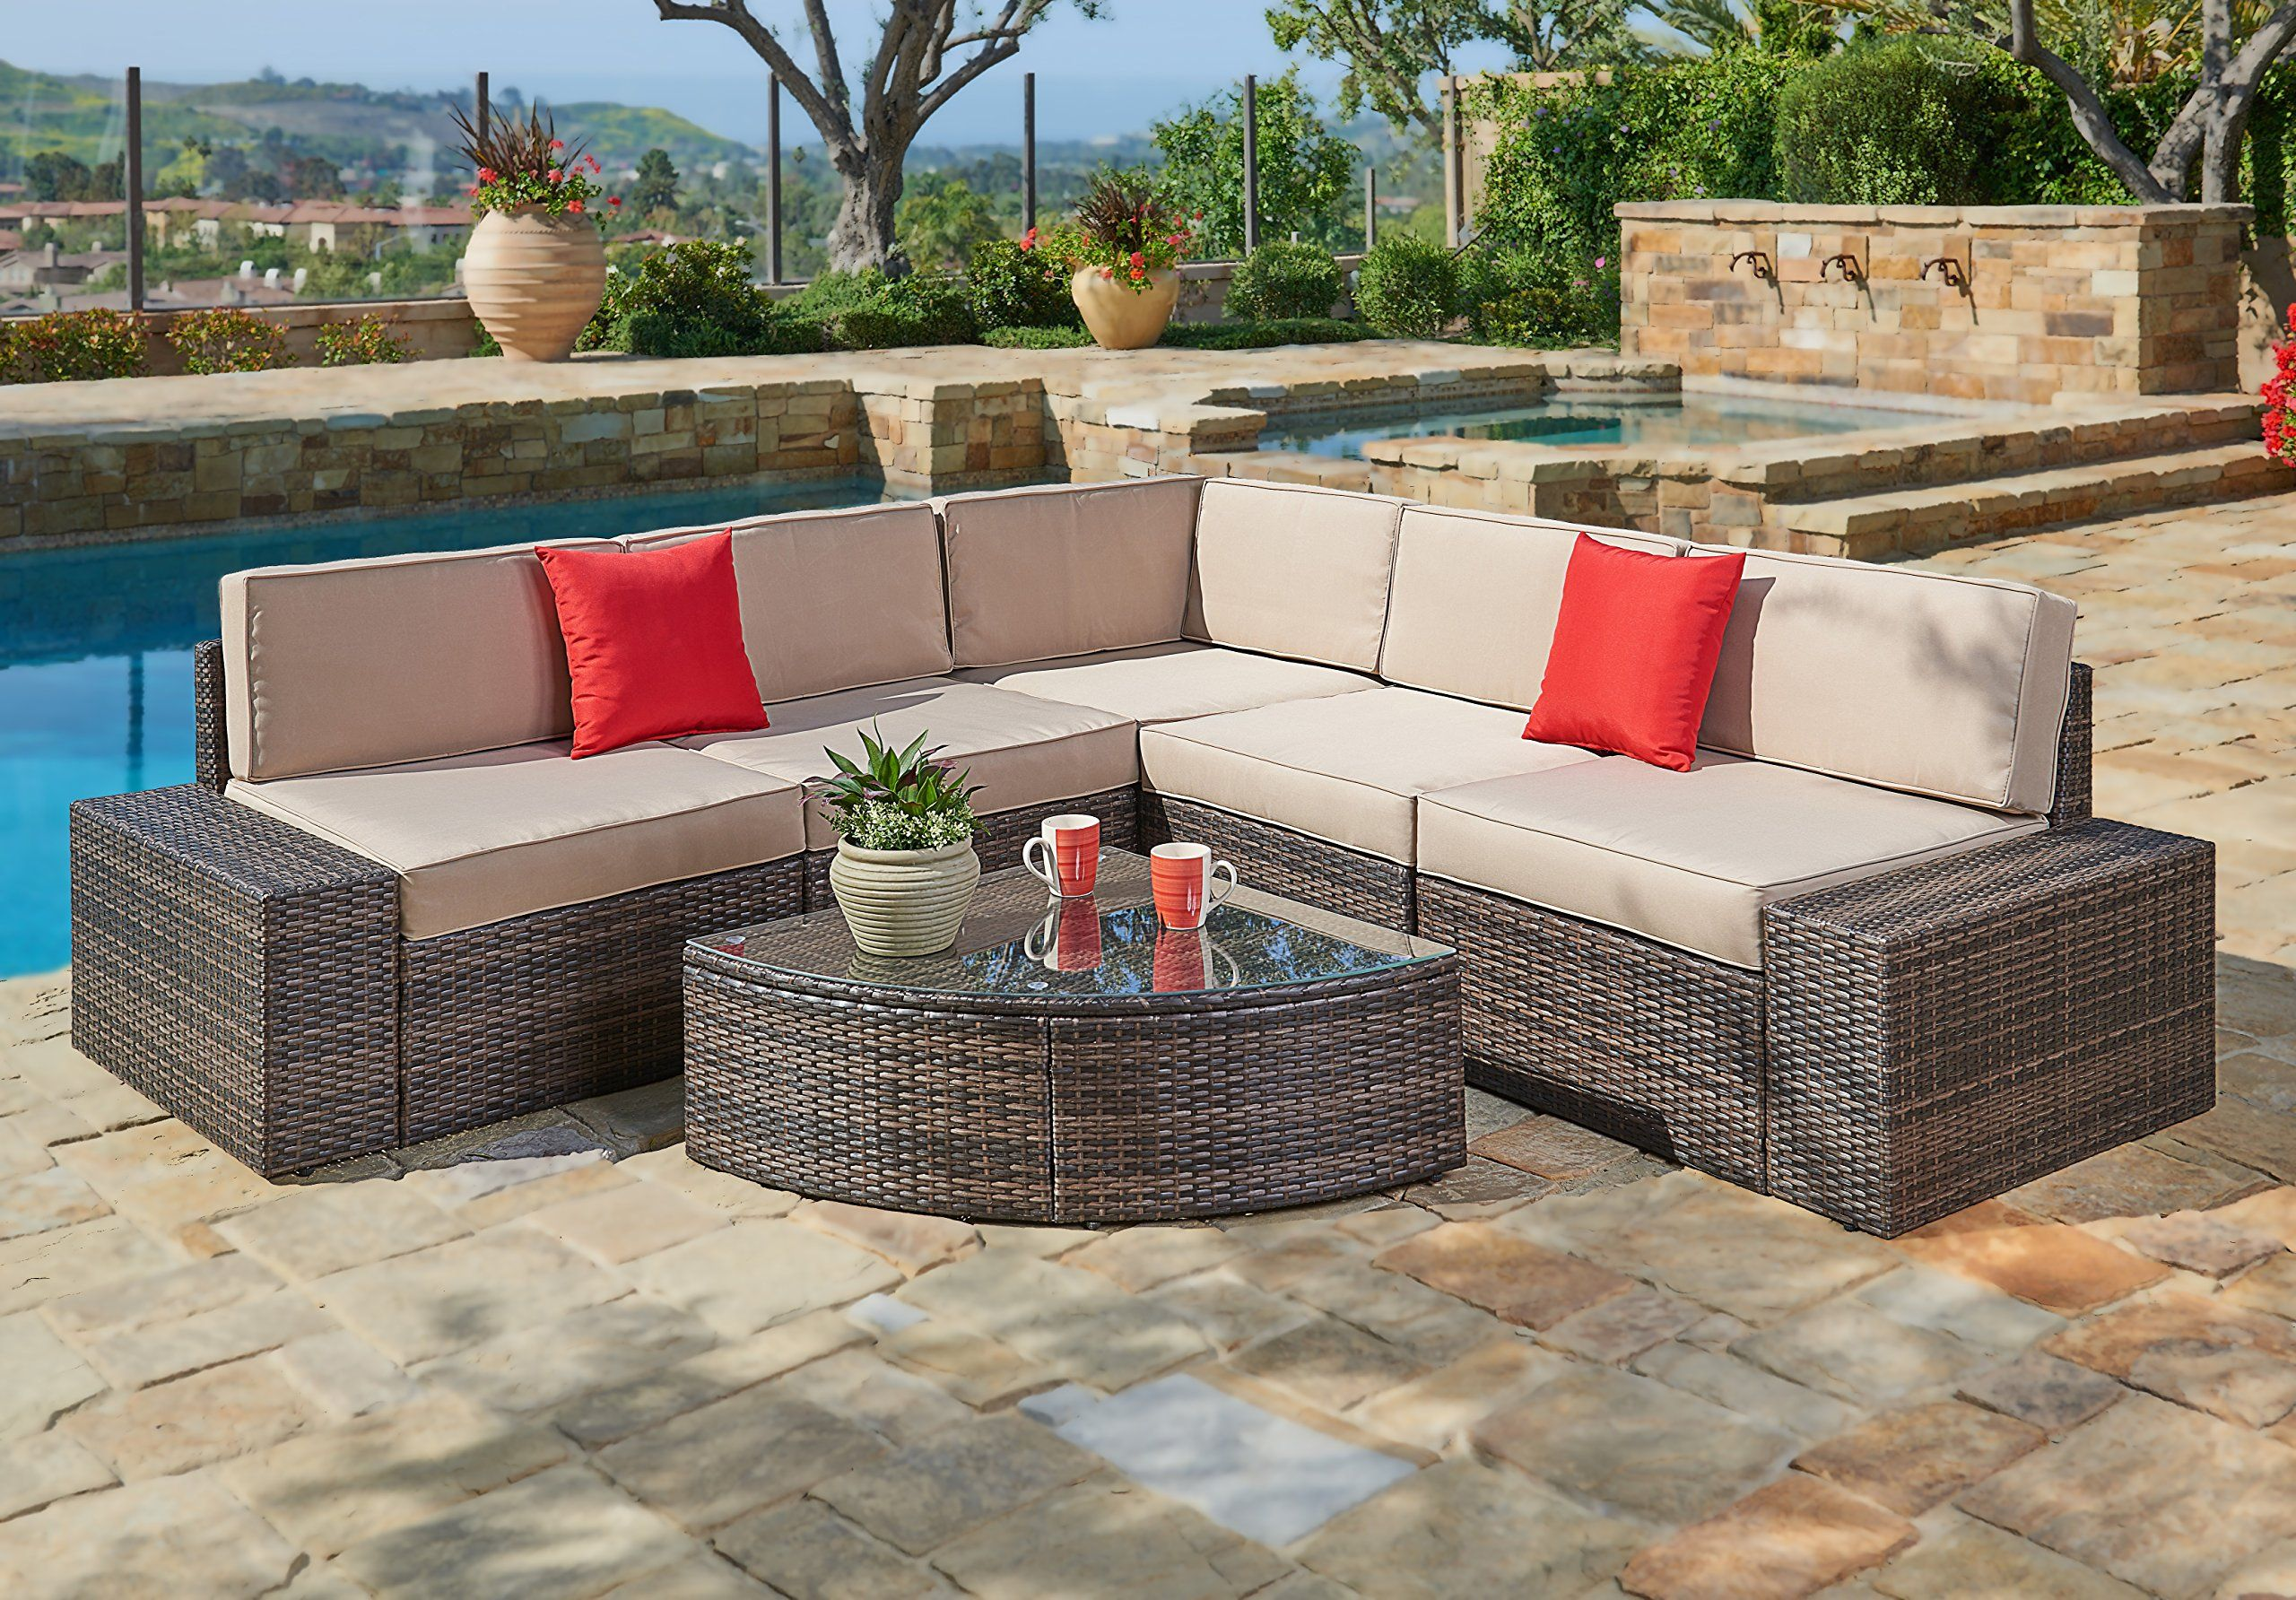 Suncrown Outdoor Furniture Sectional Sofa & Wedge Table 6 Piece